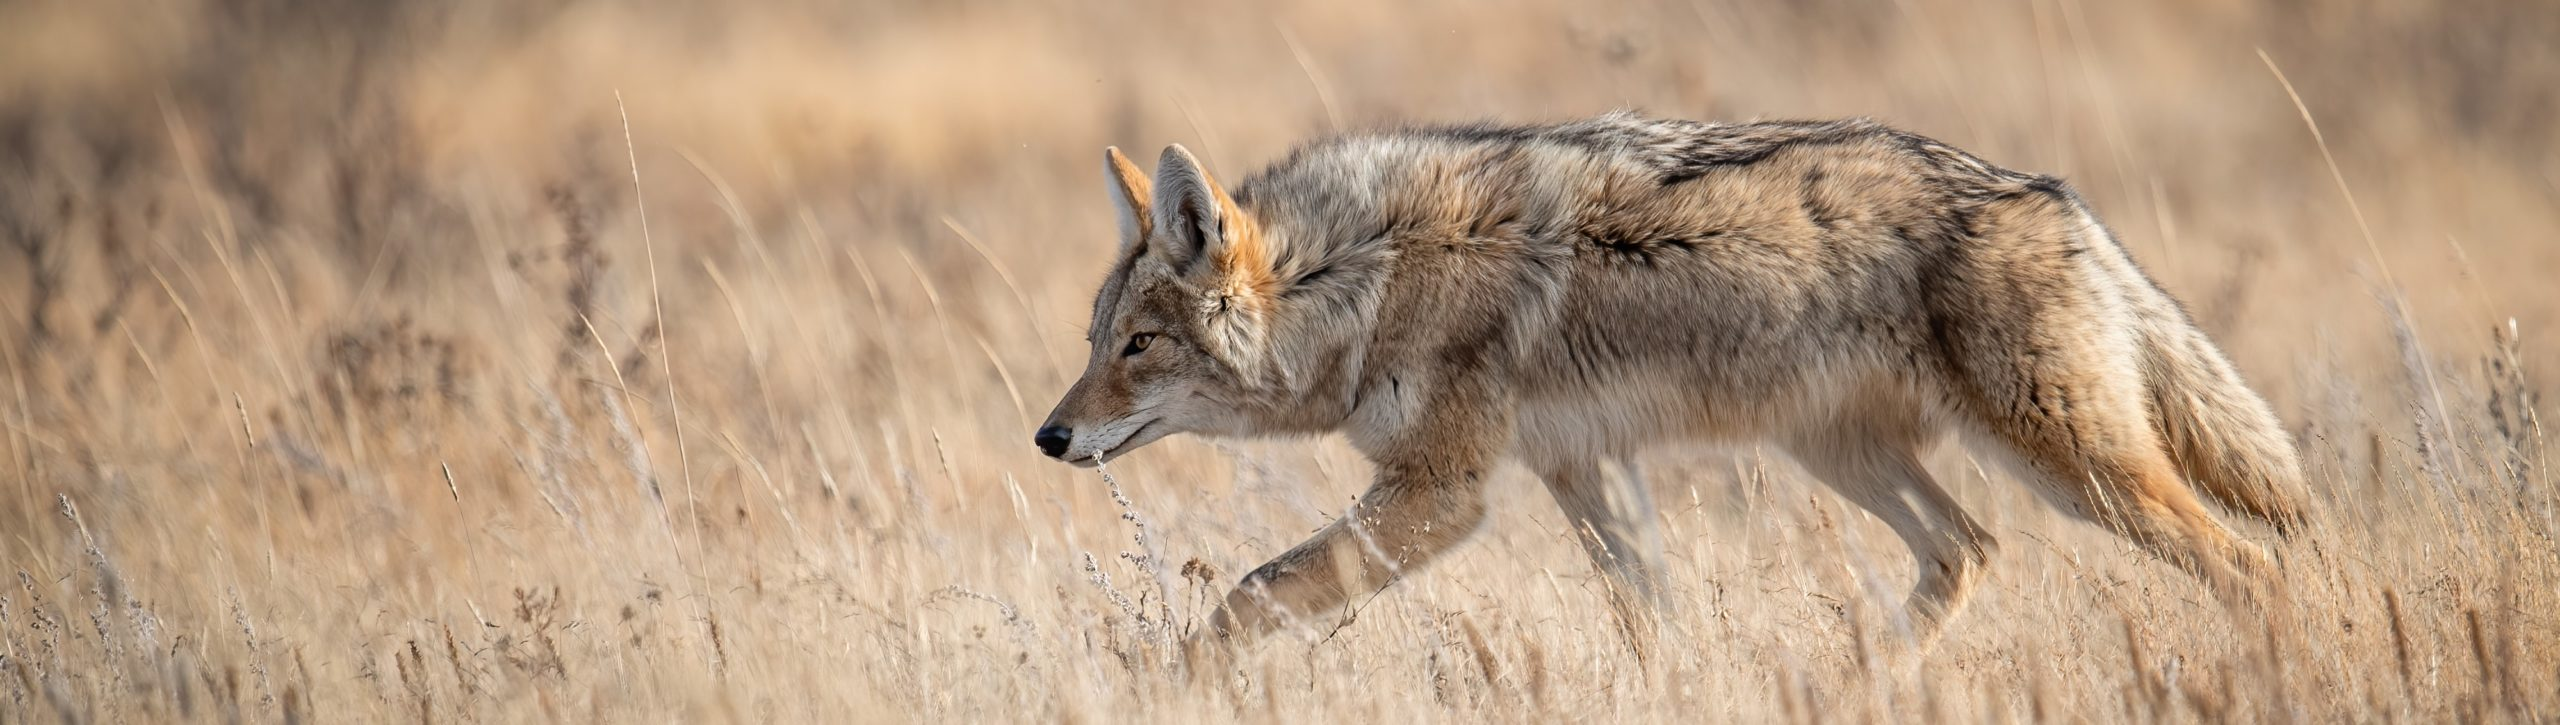 Image of coyote stalking small prey